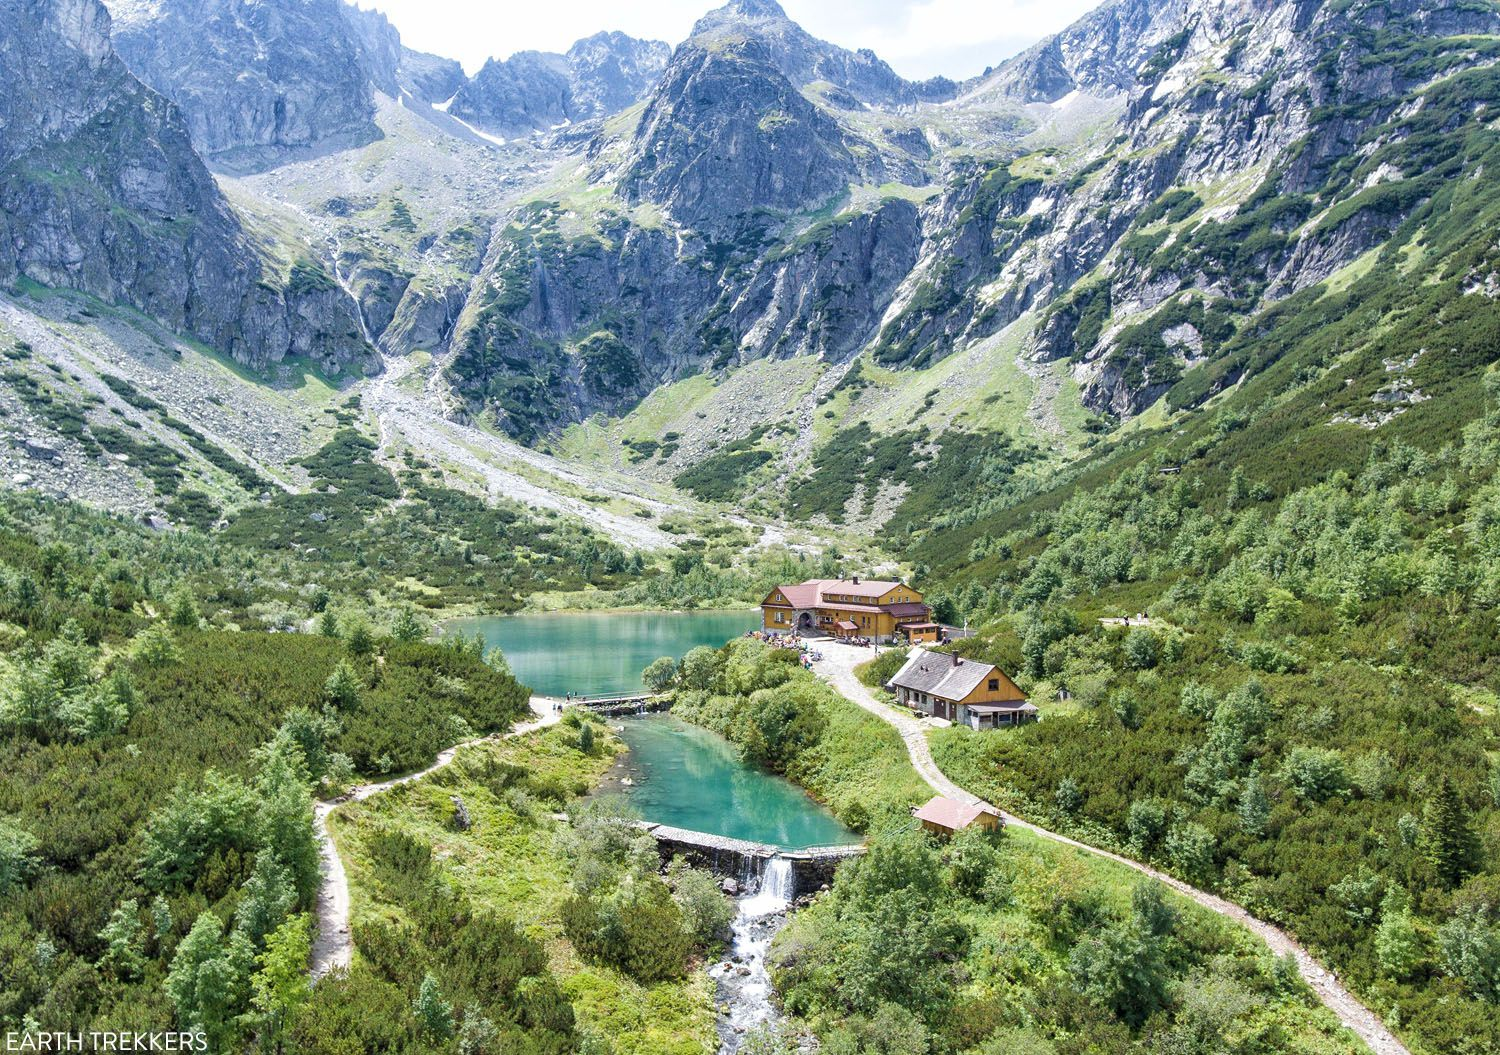 Tatras places to visit in Europe